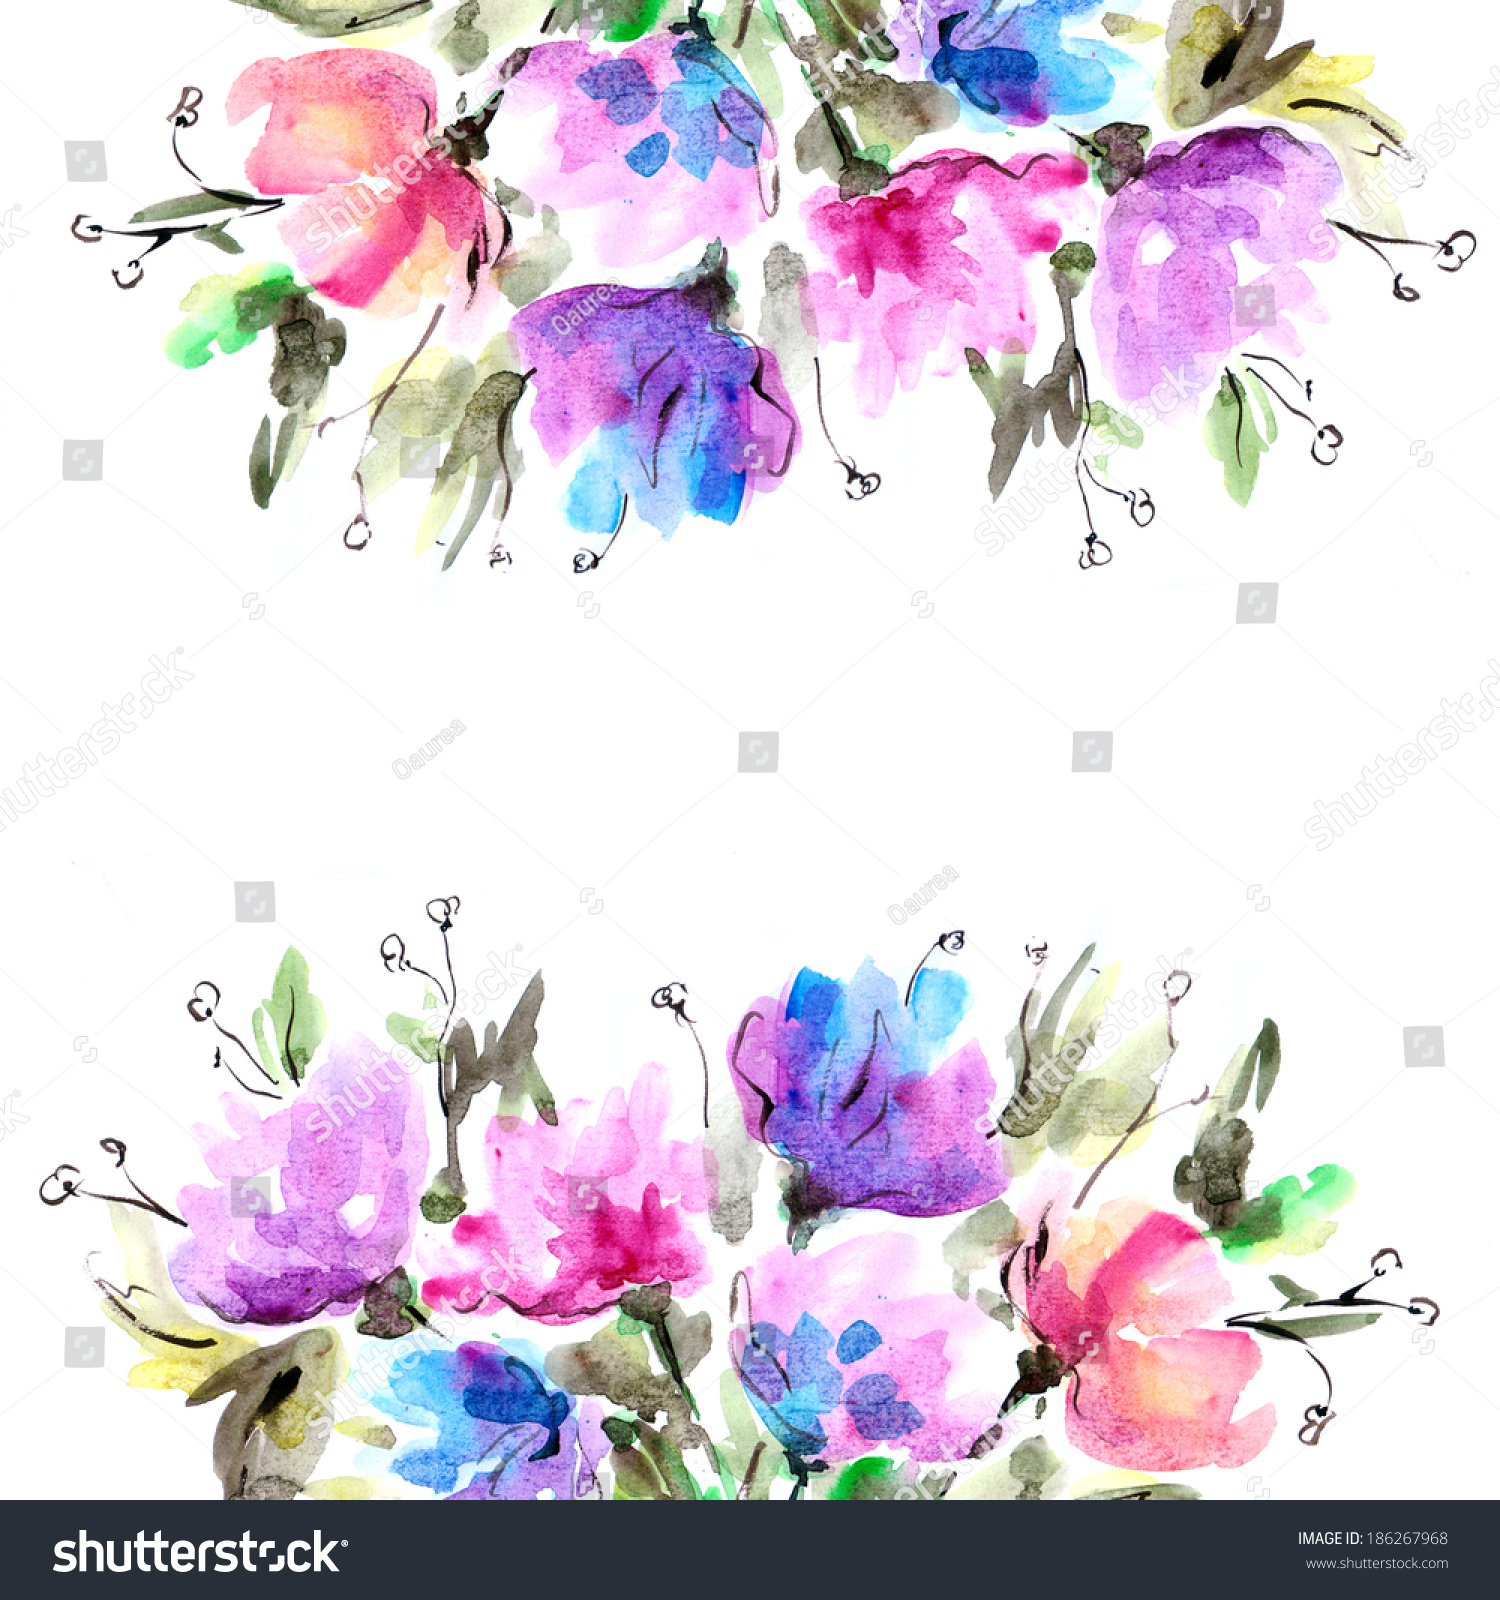 ... Floral Background. Birthday Card. Stock Photo 186267968 : Shutterstock